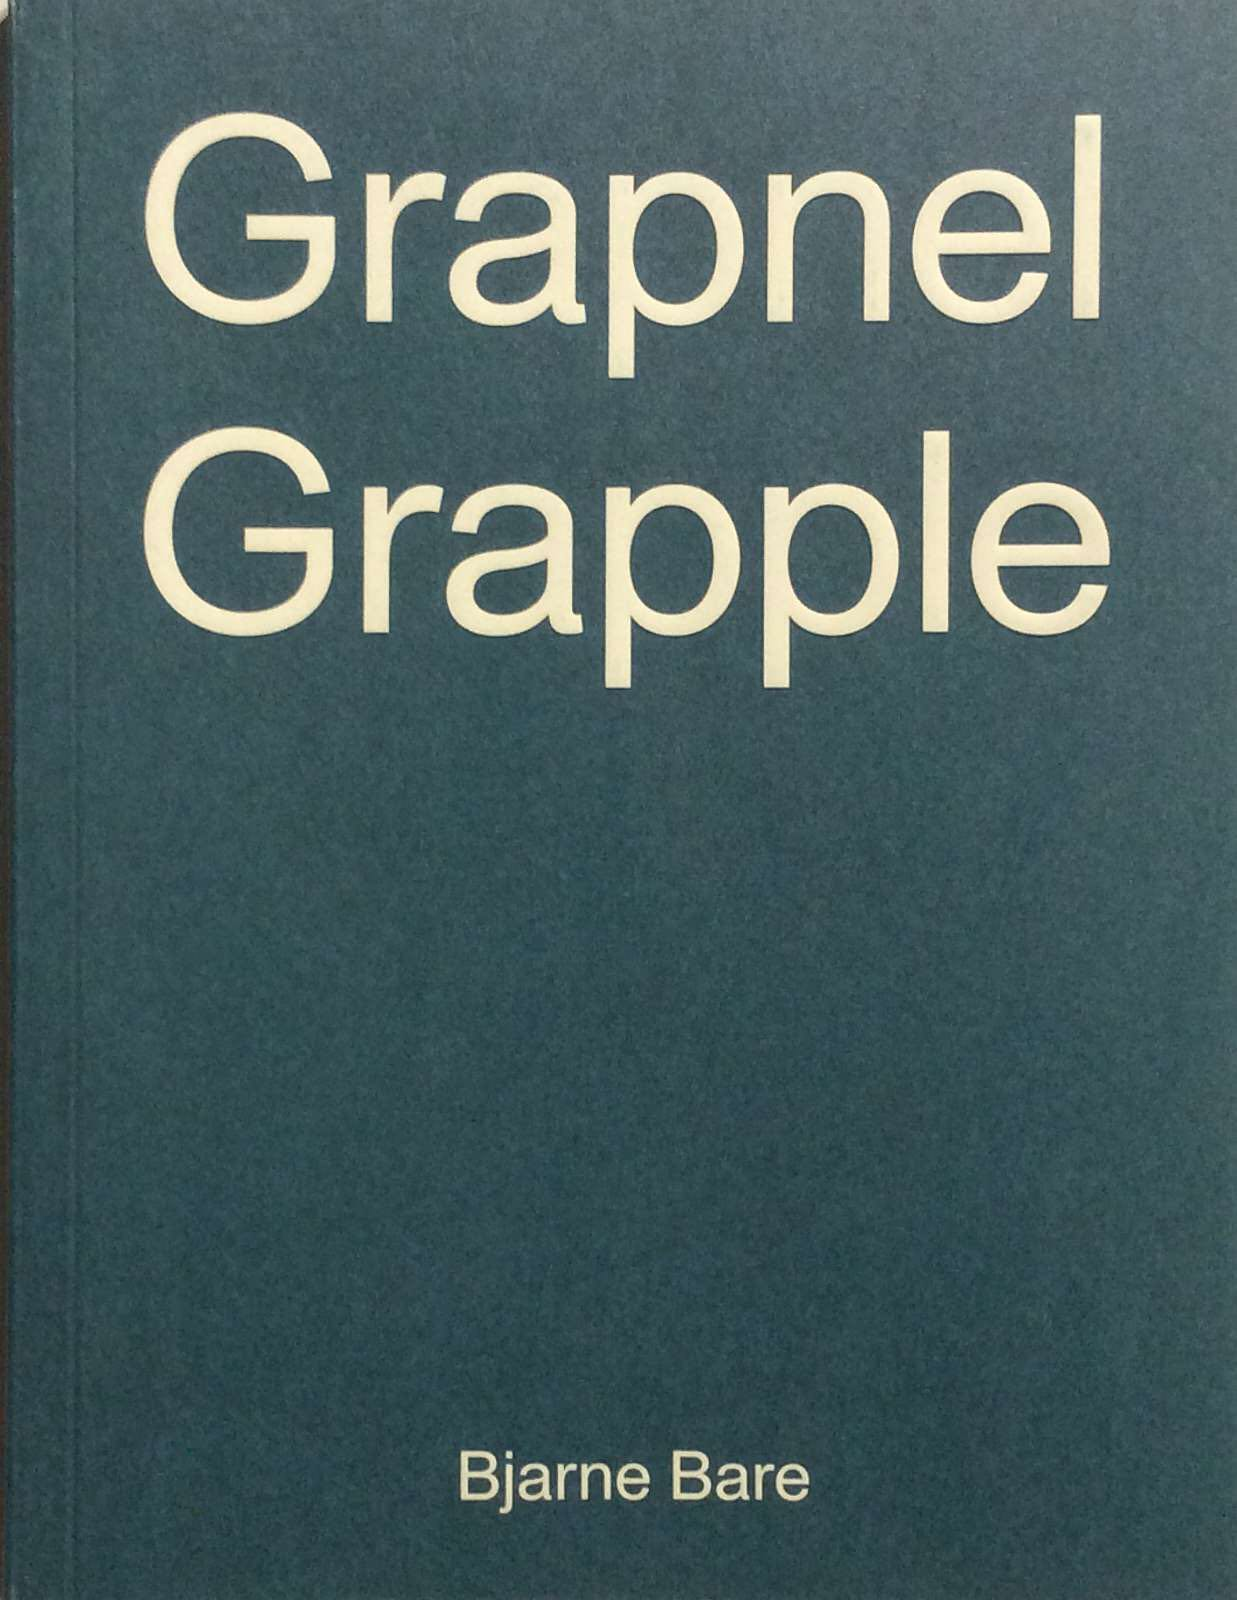 Bare, Bjarne. Grapnel Grapple